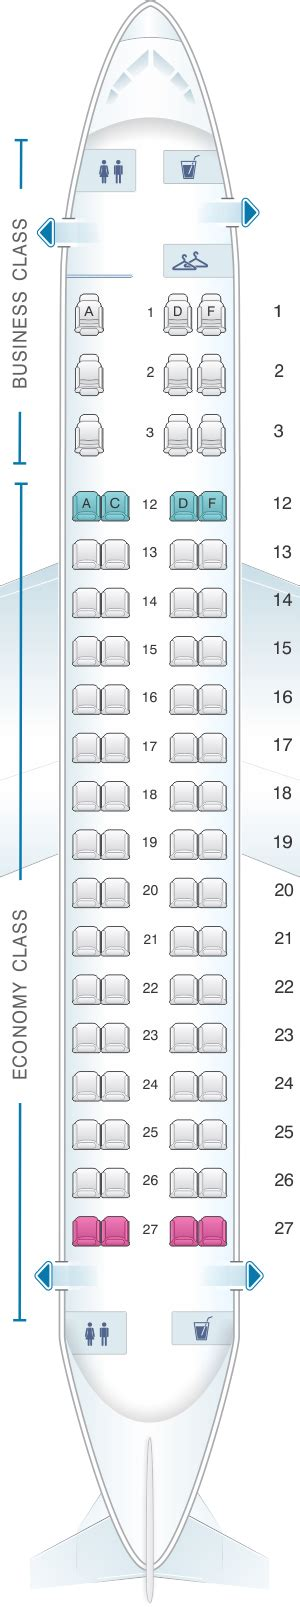 embraer erj 175 seat map seat map air canada embraer emb 175 seatmaestro